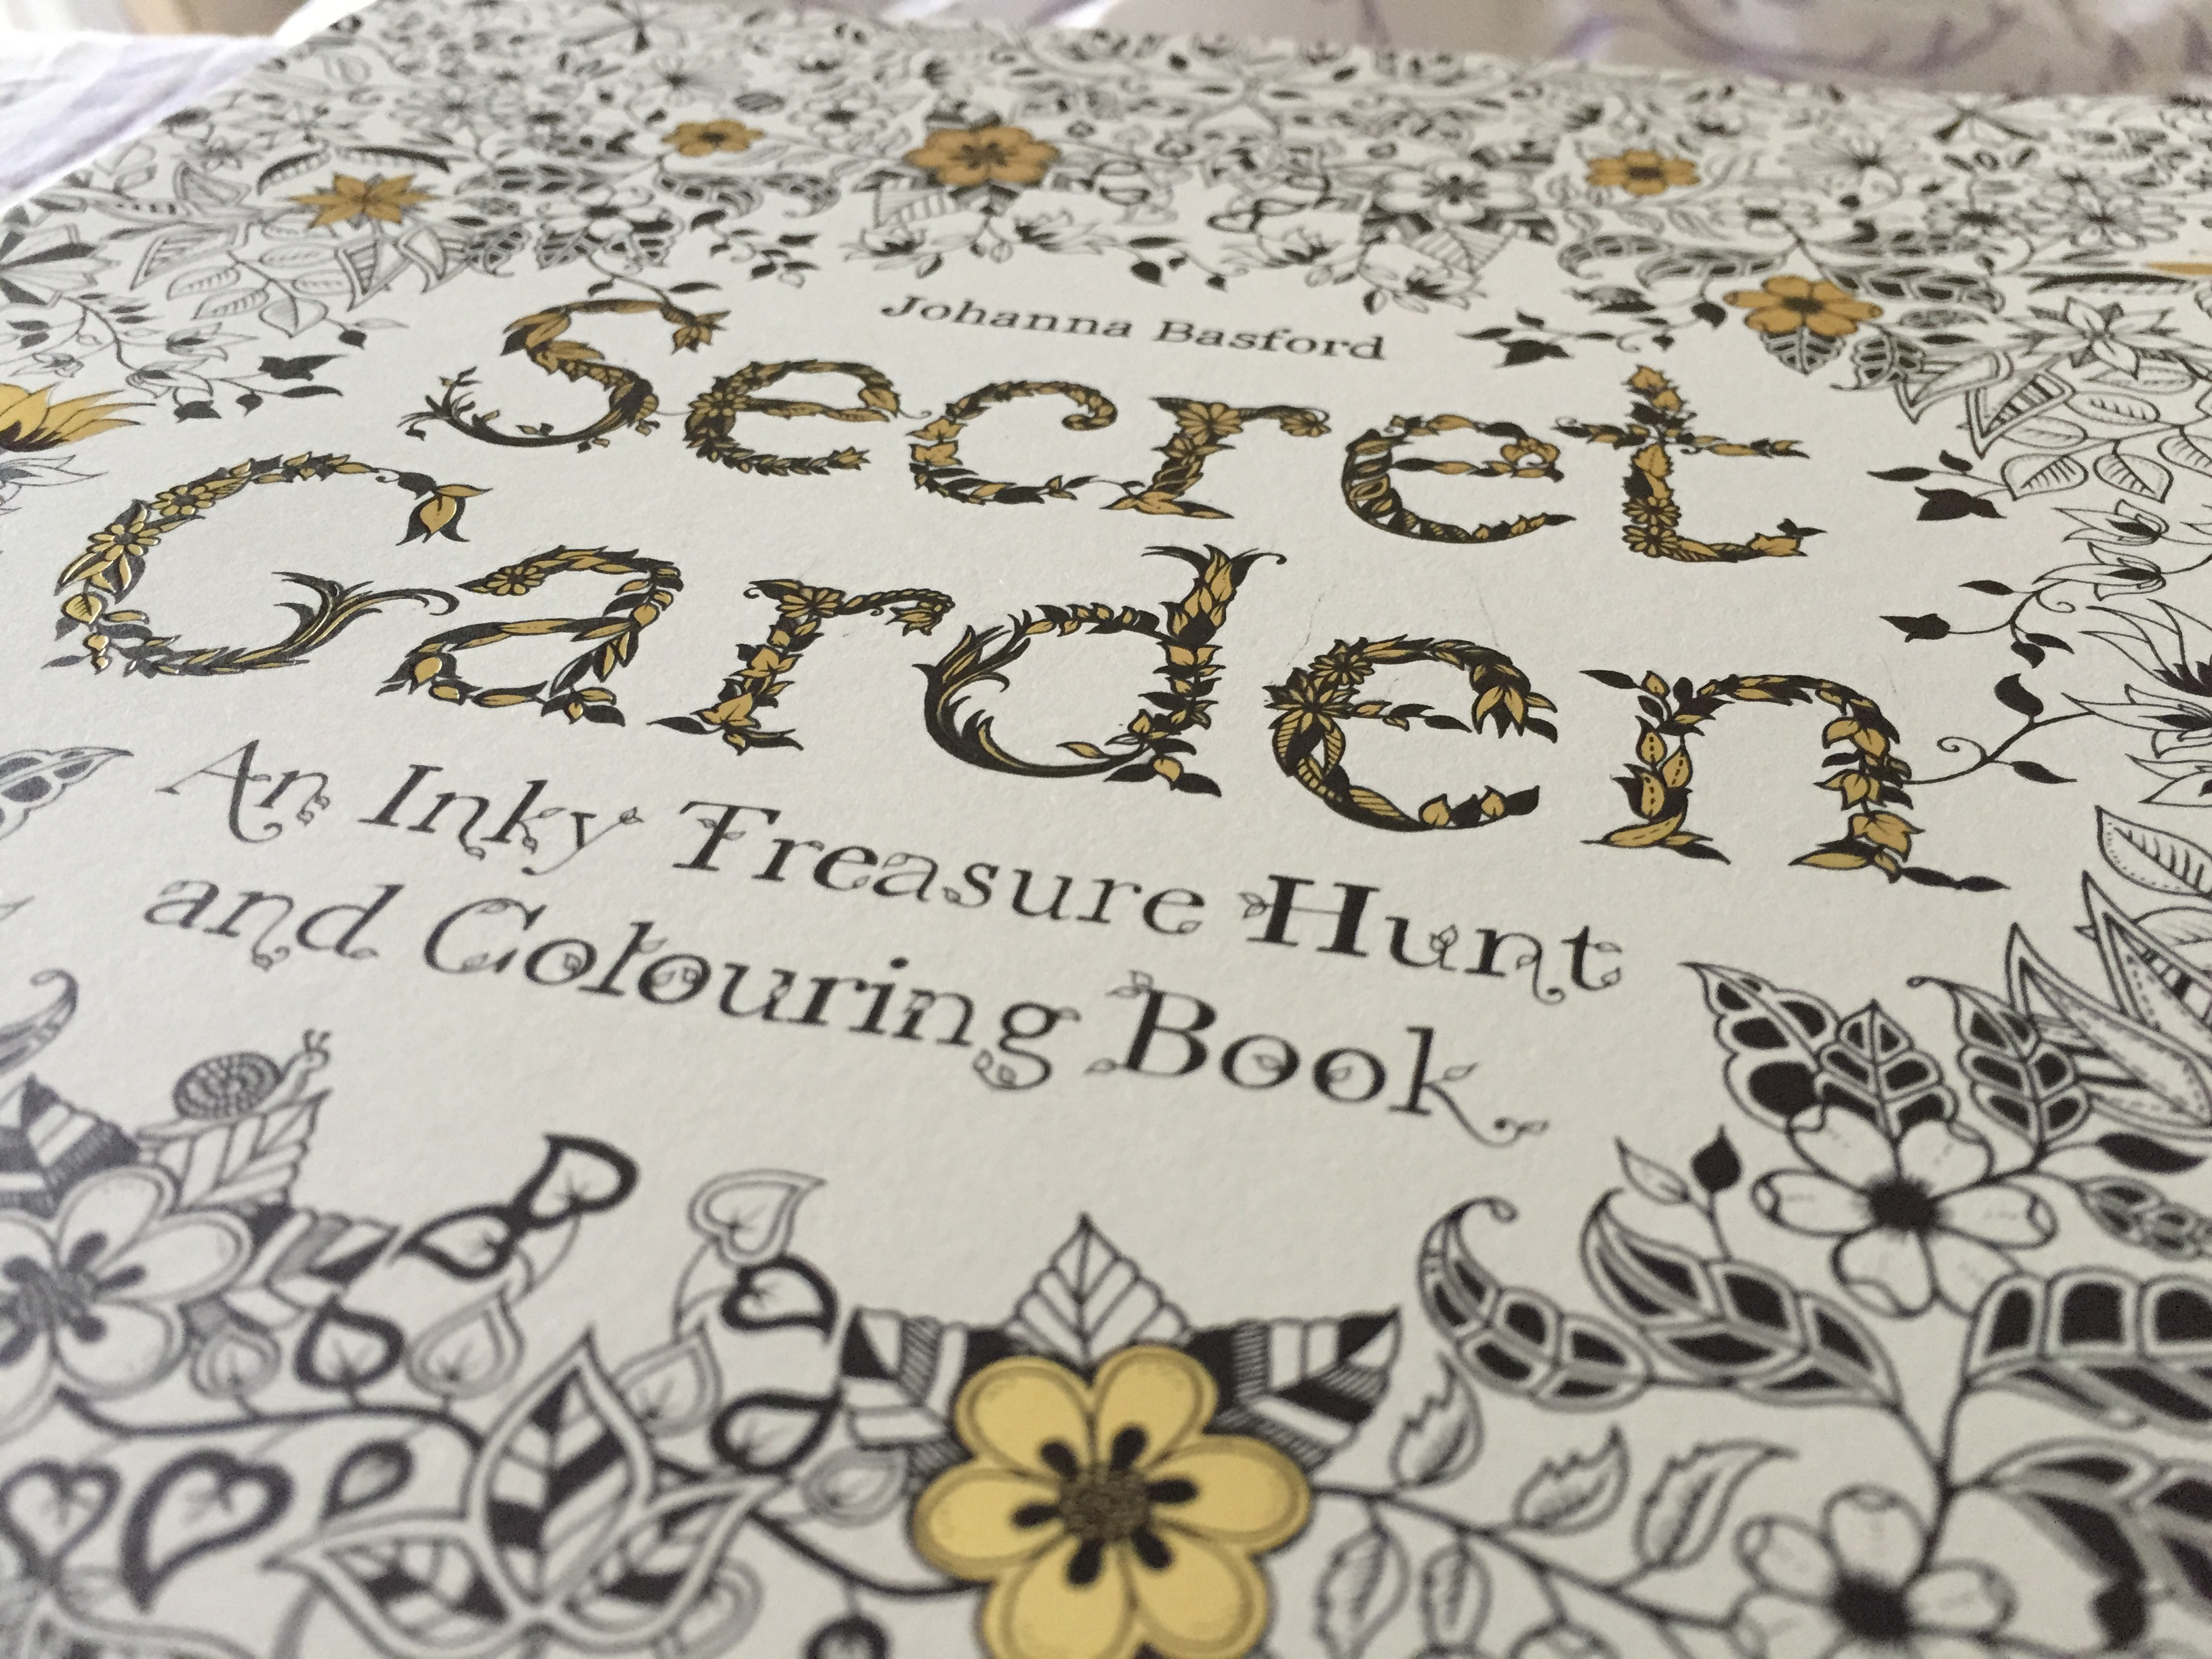 Bliss Also On Facebook To Purchase My Next Colouring Book Johanna Basfords Secret Garden And World Was Looking Brighter